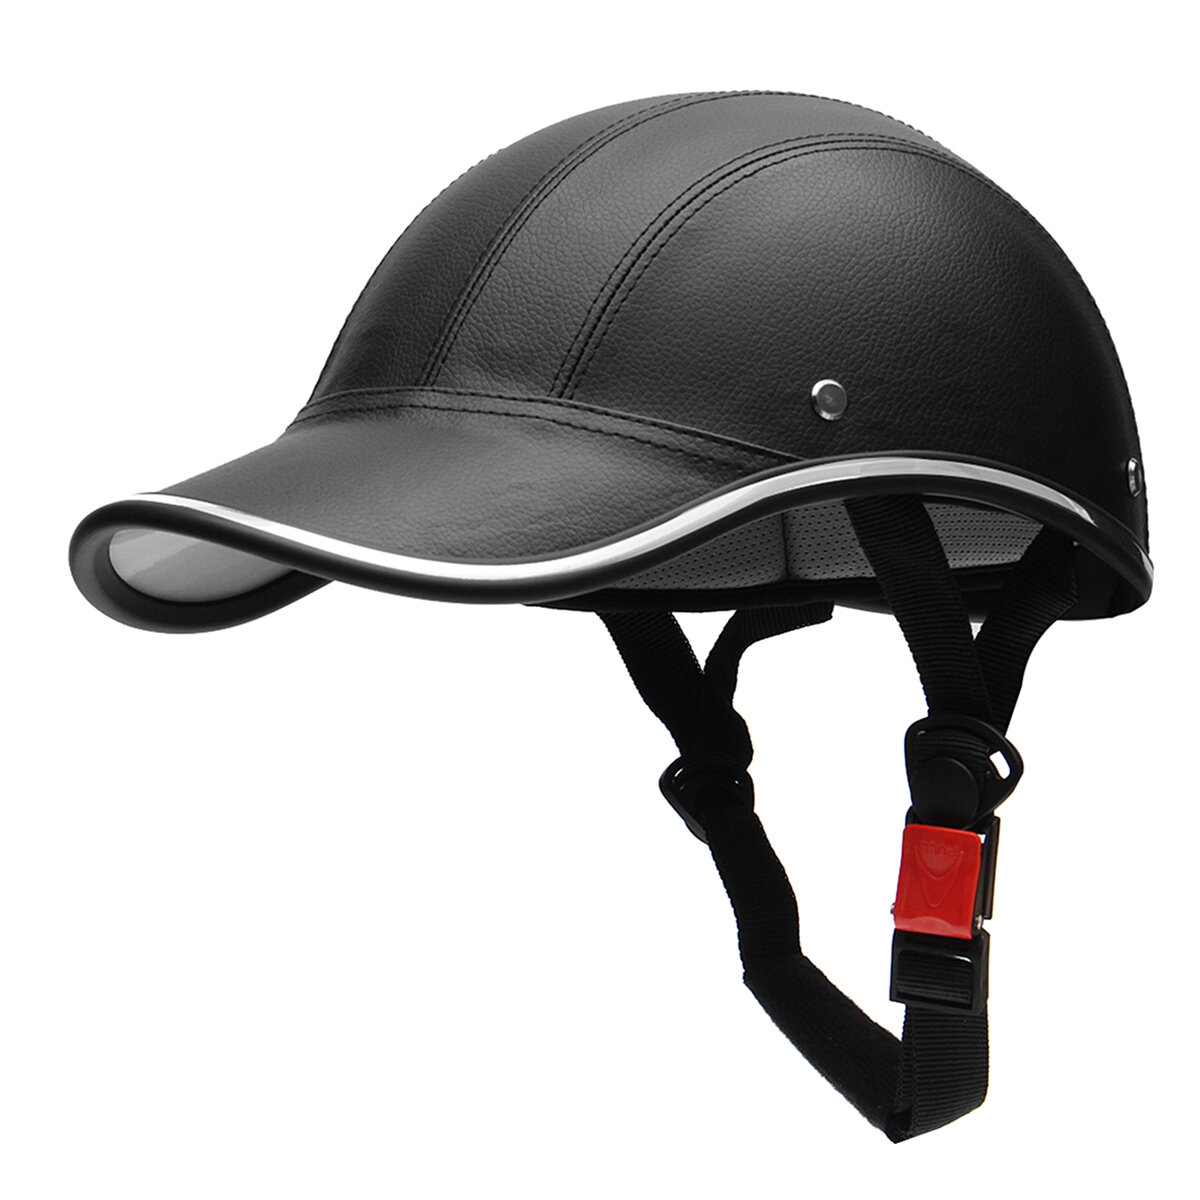 Half Helmet Baseball Cap Style Safety Hard Hat Open Face For Motorcycle Bike Scooter